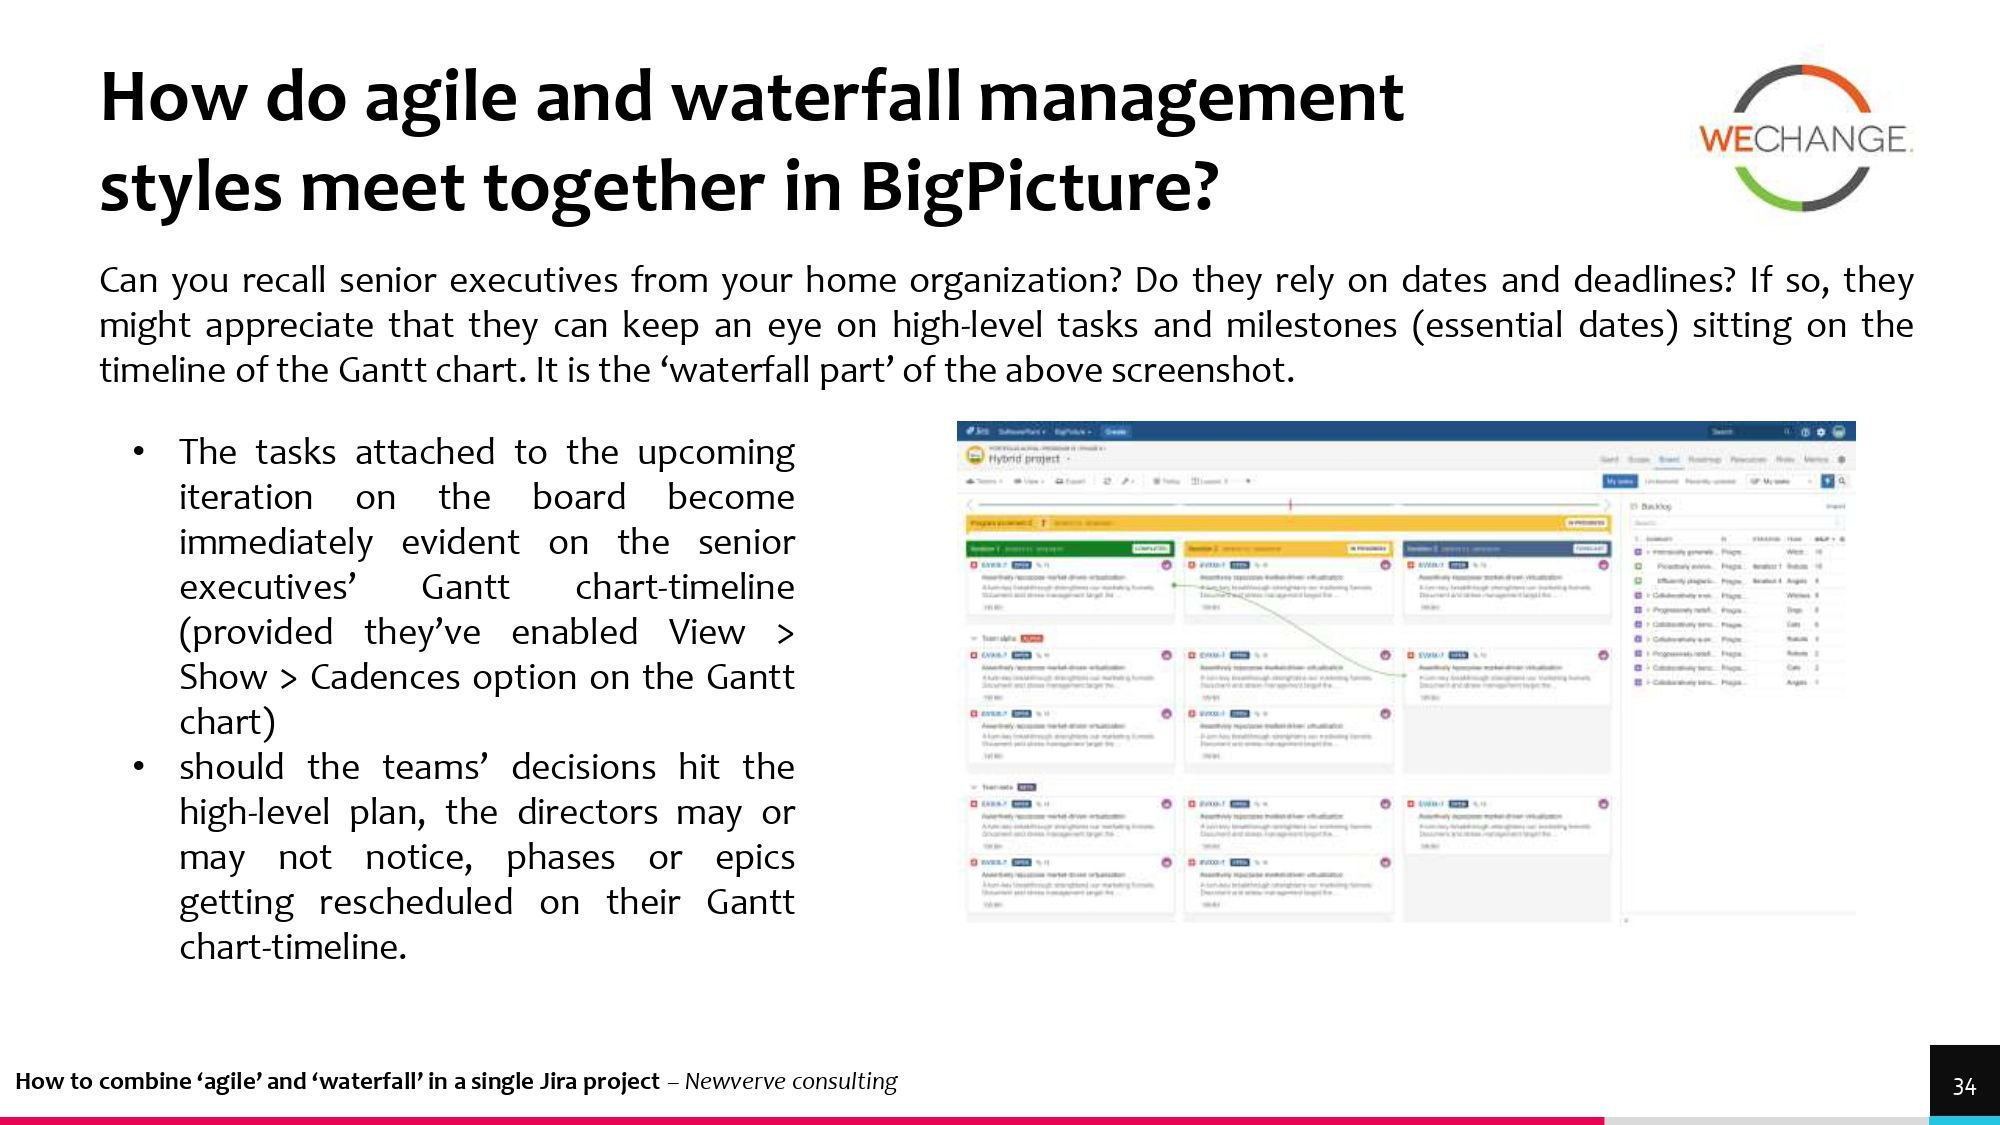 Hybrid – combining agile and waterfall projects side by side  1 page 0027 compressed Combining agile and waterfall projects side by side? Howto